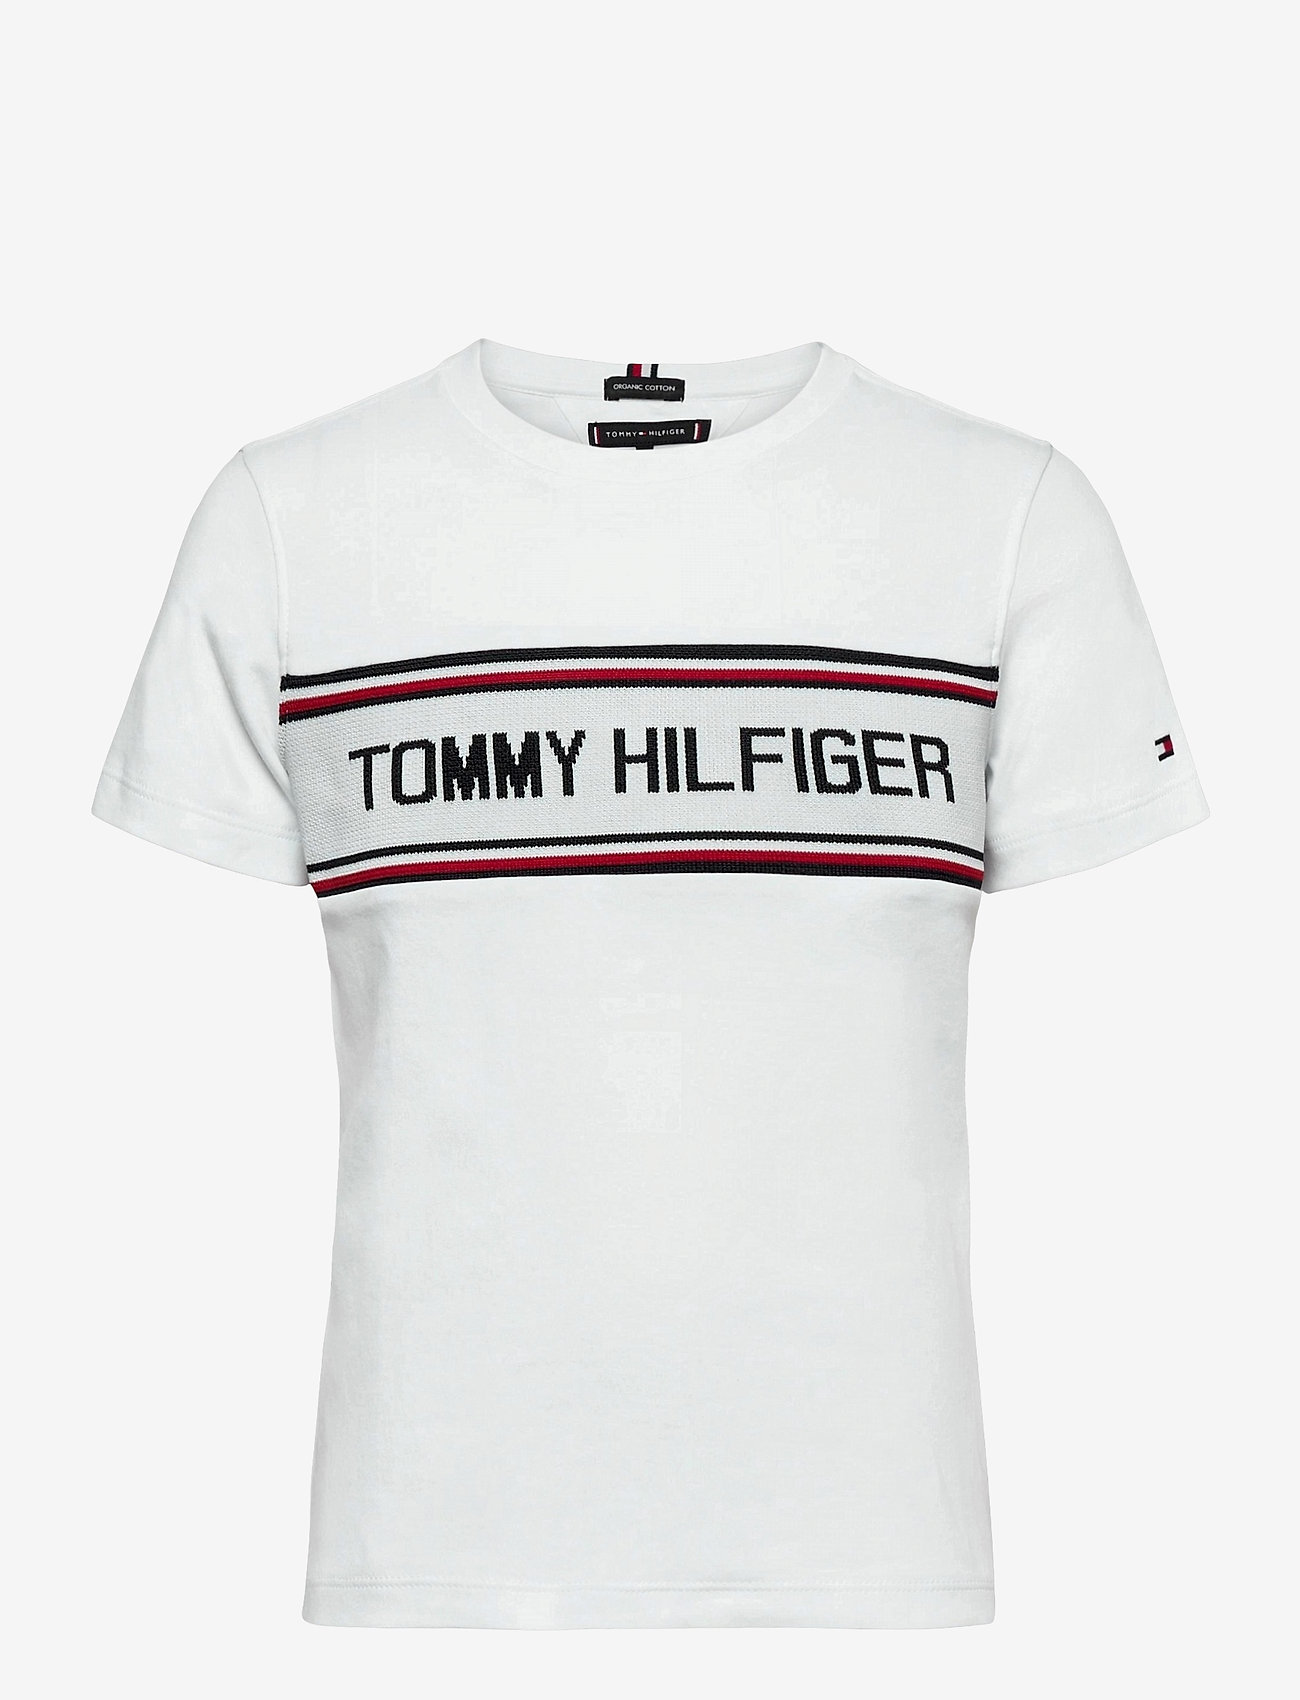 Tommy Hilfiger - TH INTARSIA TEE S/S - short-sleeved - white 658-170 - 0